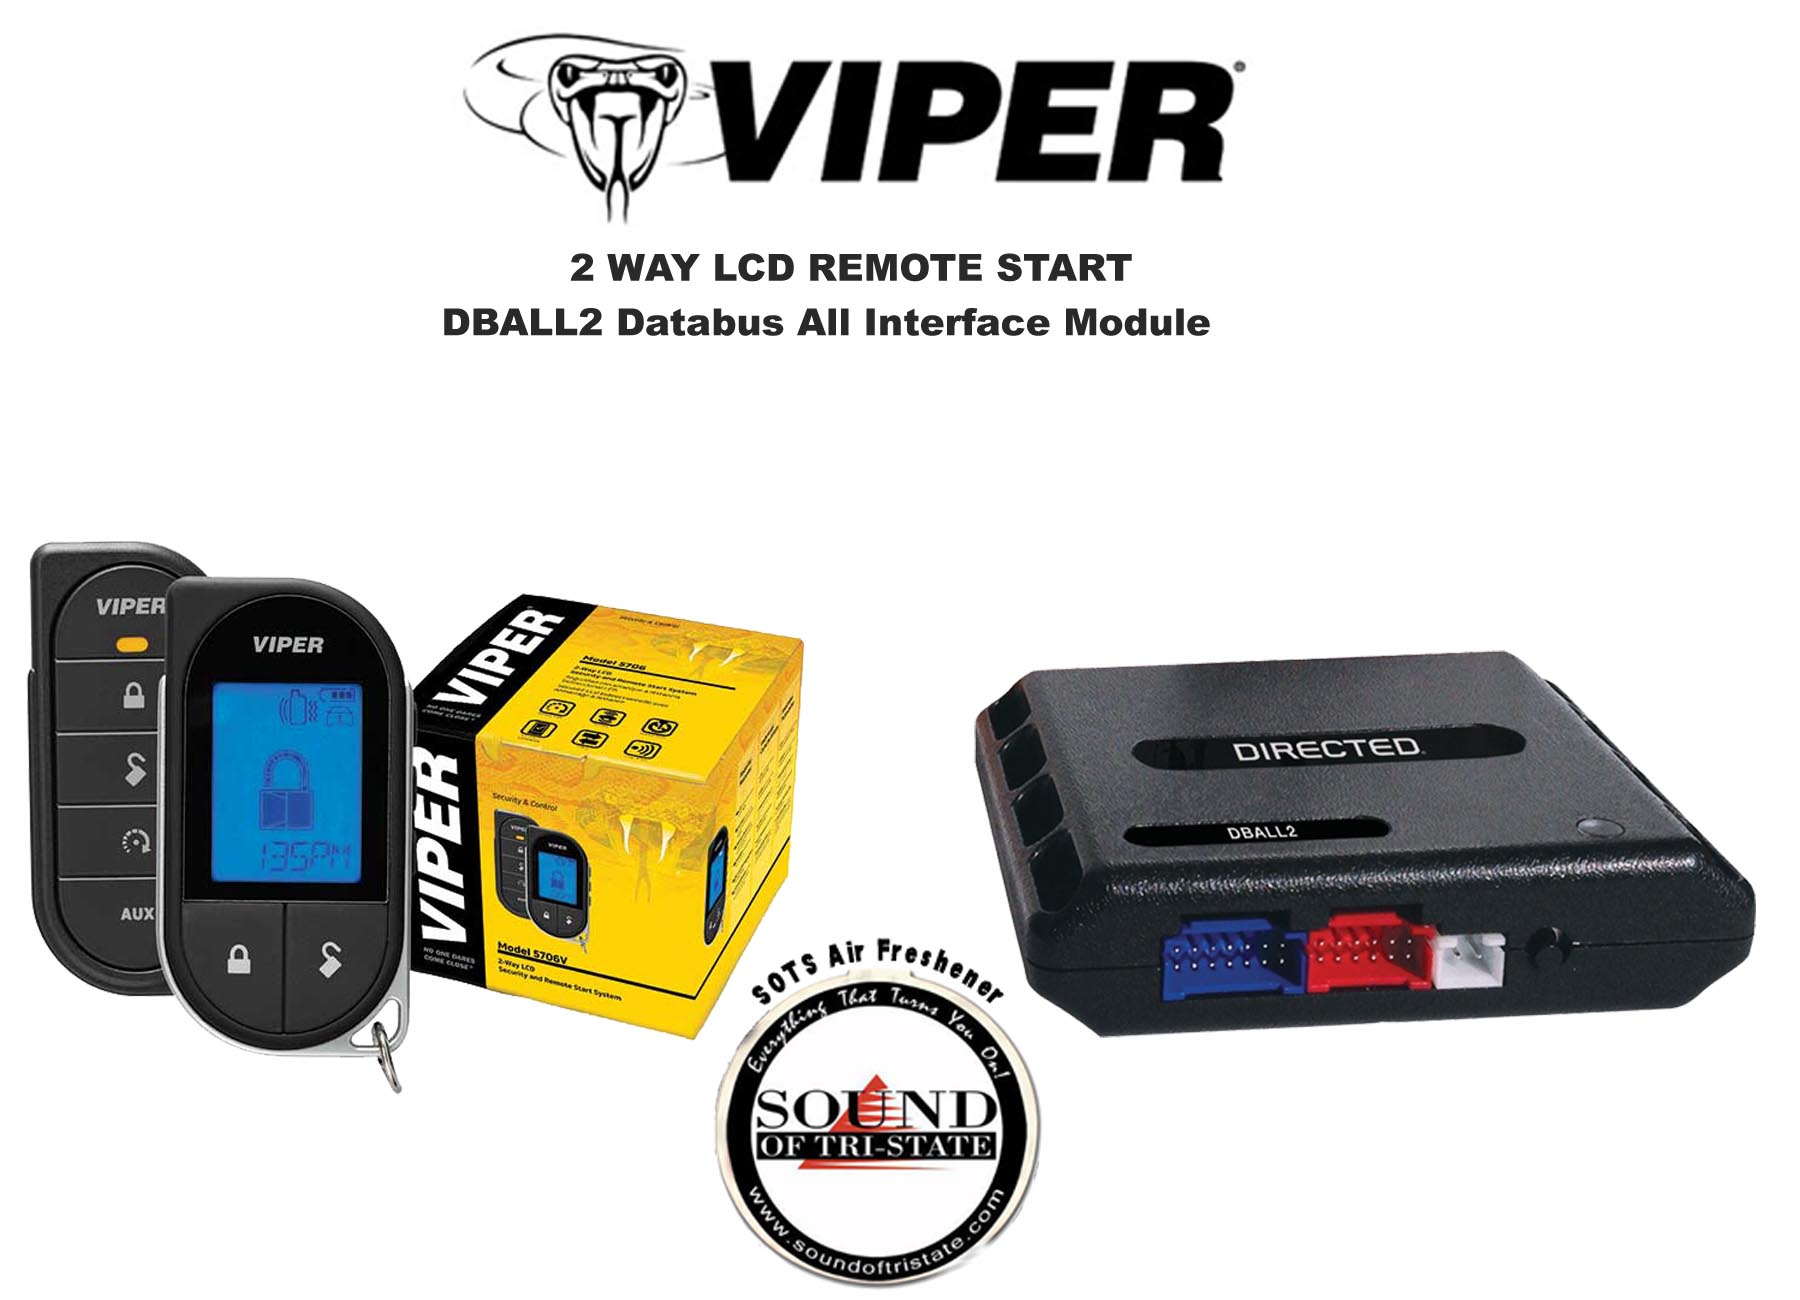 Refurbished Viper 5706V 2 Way LCD Remote Starter Car Alarm w  DBALL2 Bypass Interface by Viper